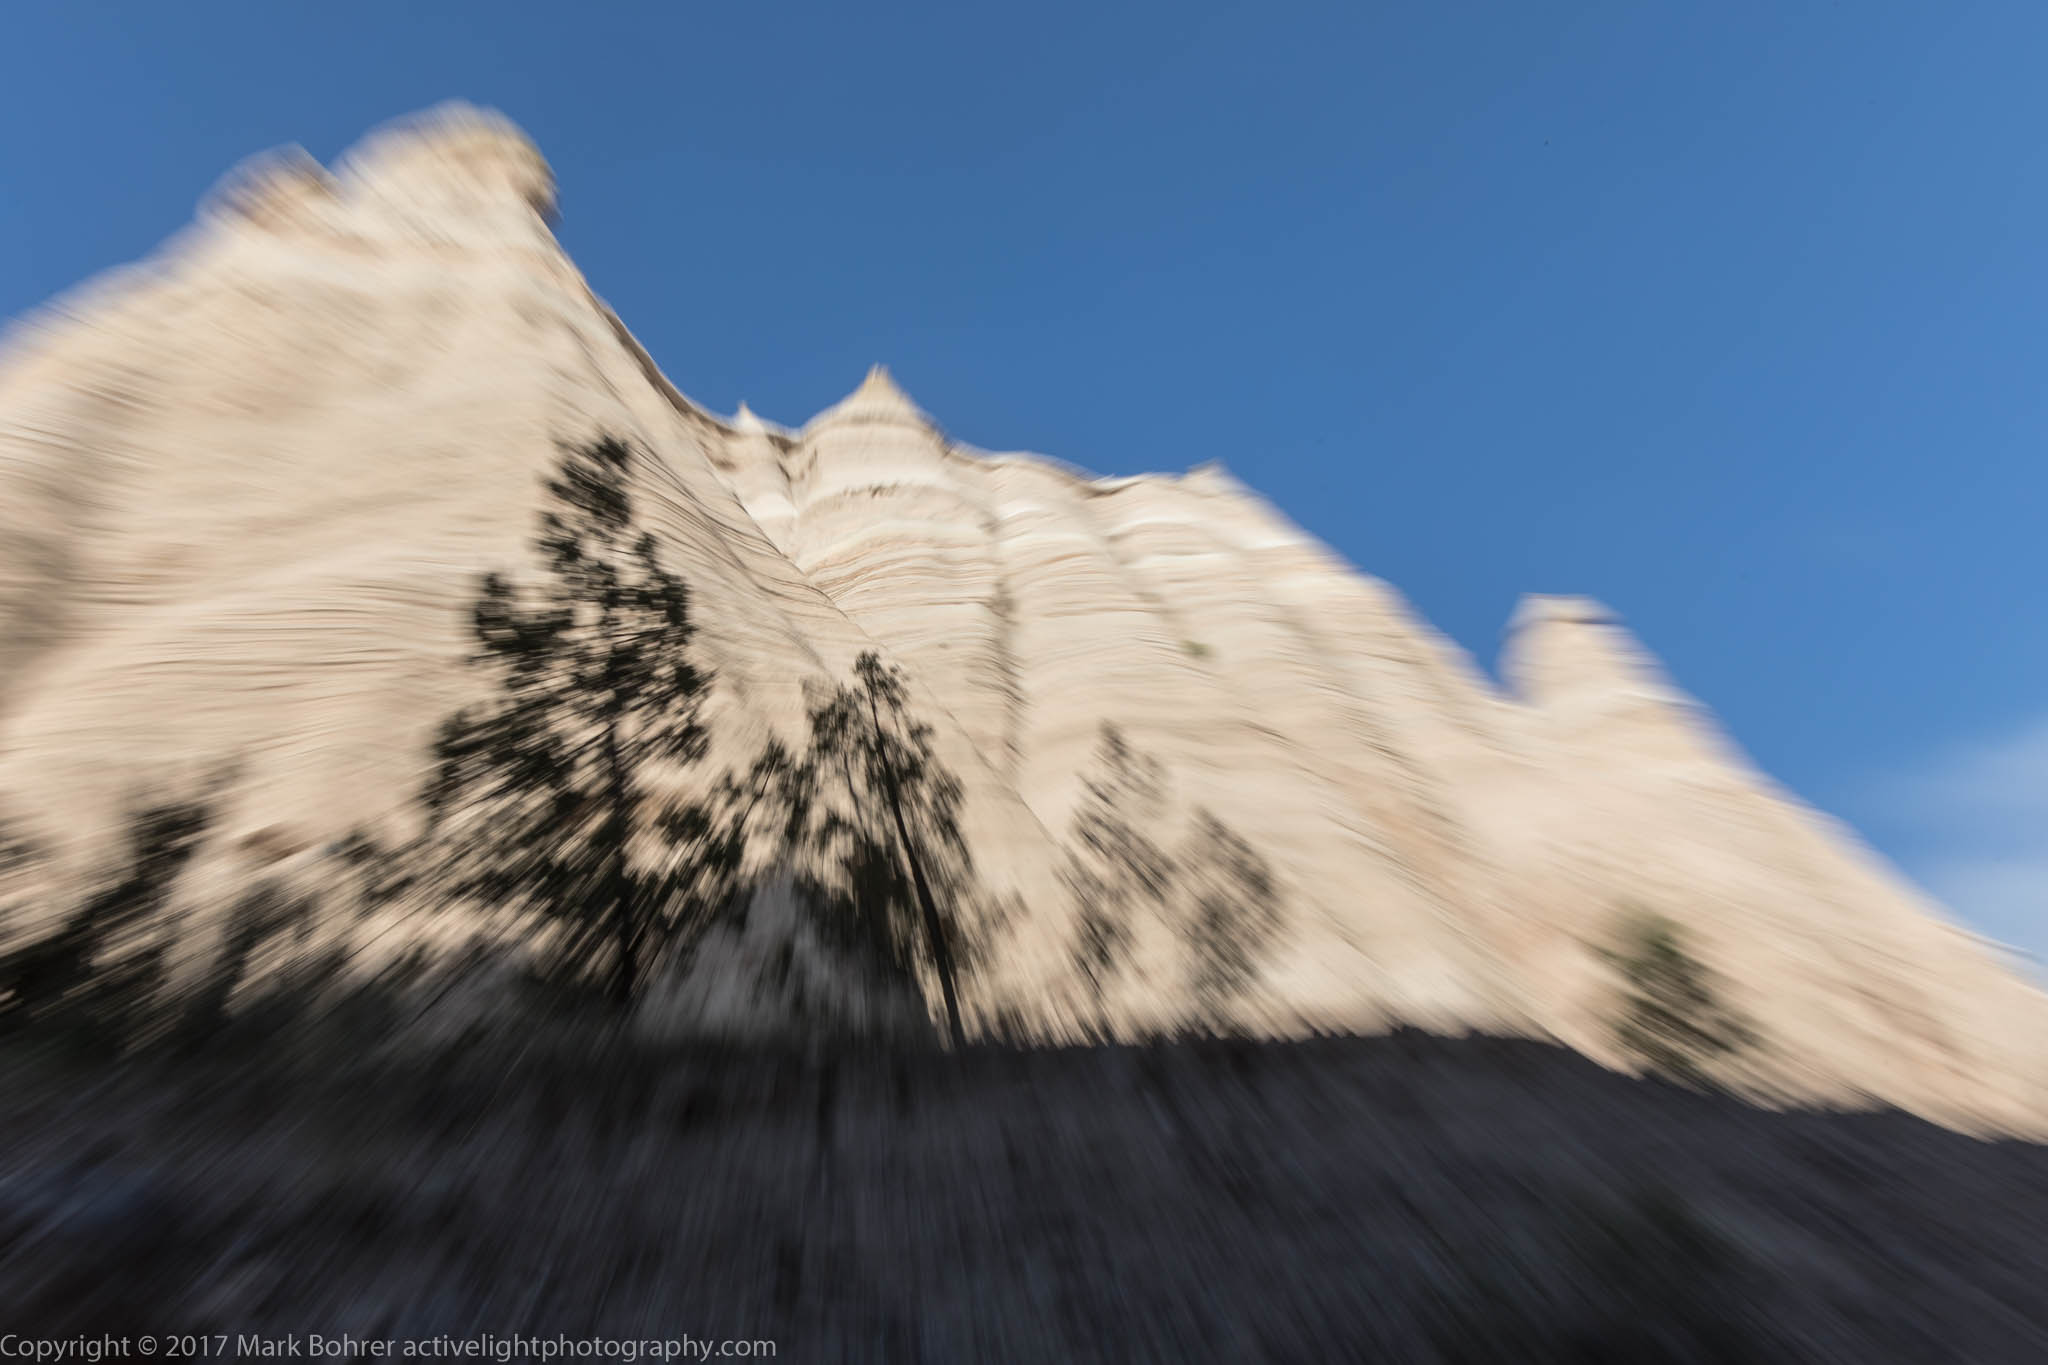 Zoom blurs do work handheld at 1/30 second - Kasha-Katuwe Tent Rocks National Monument